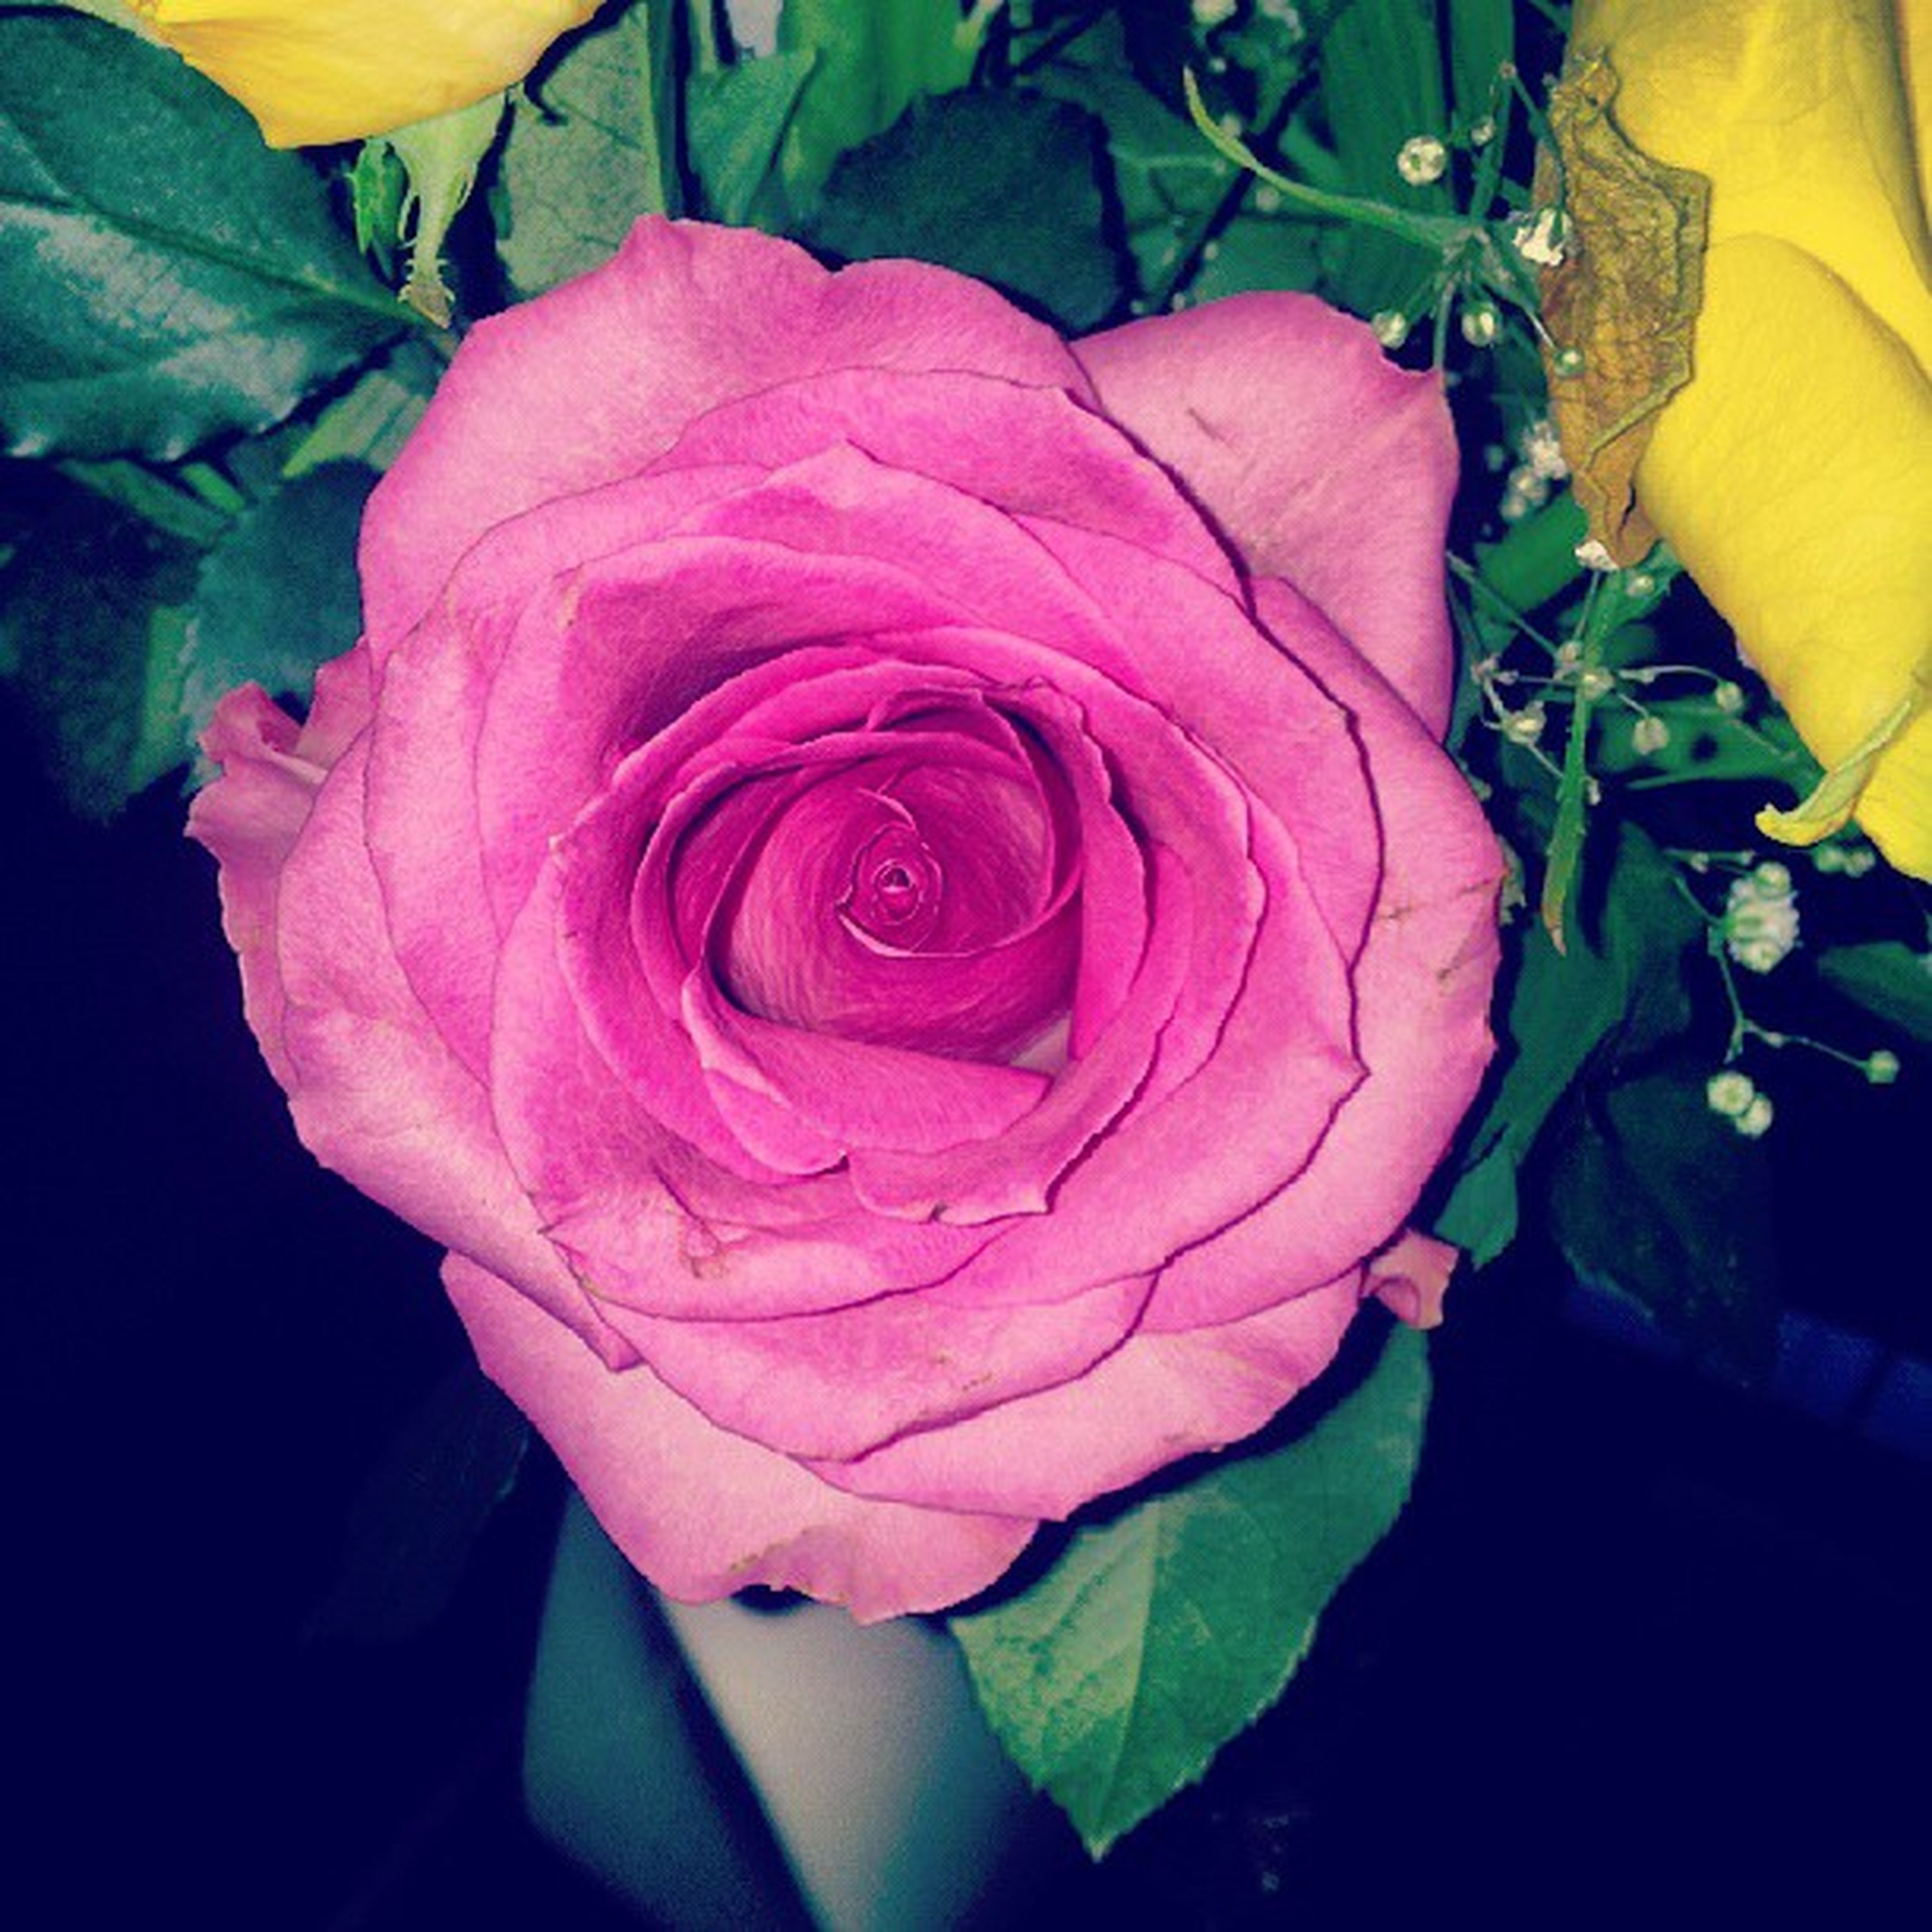 flower, petal, rose - flower, flower head, fragility, freshness, beauty in nature, growth, close-up, rose, leaf, single flower, nature, blooming, plant, single rose, high angle view, in bloom, pink color, blossom